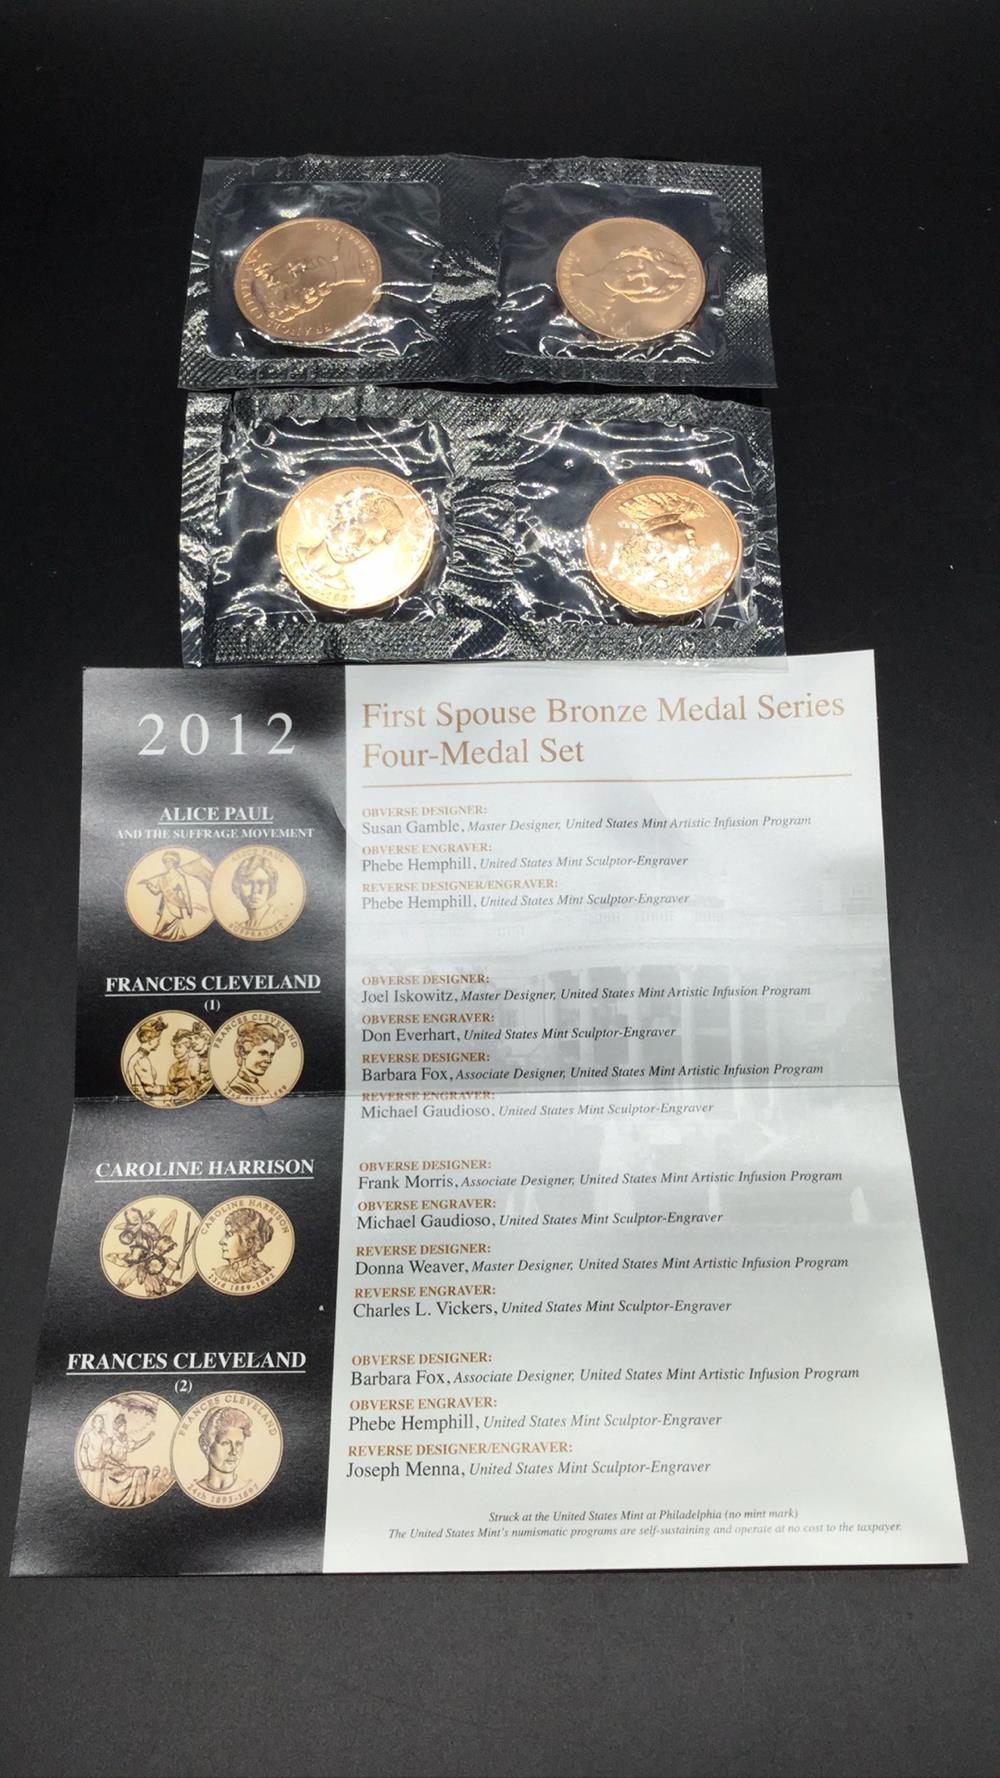 2012 first spouse bronze metal series